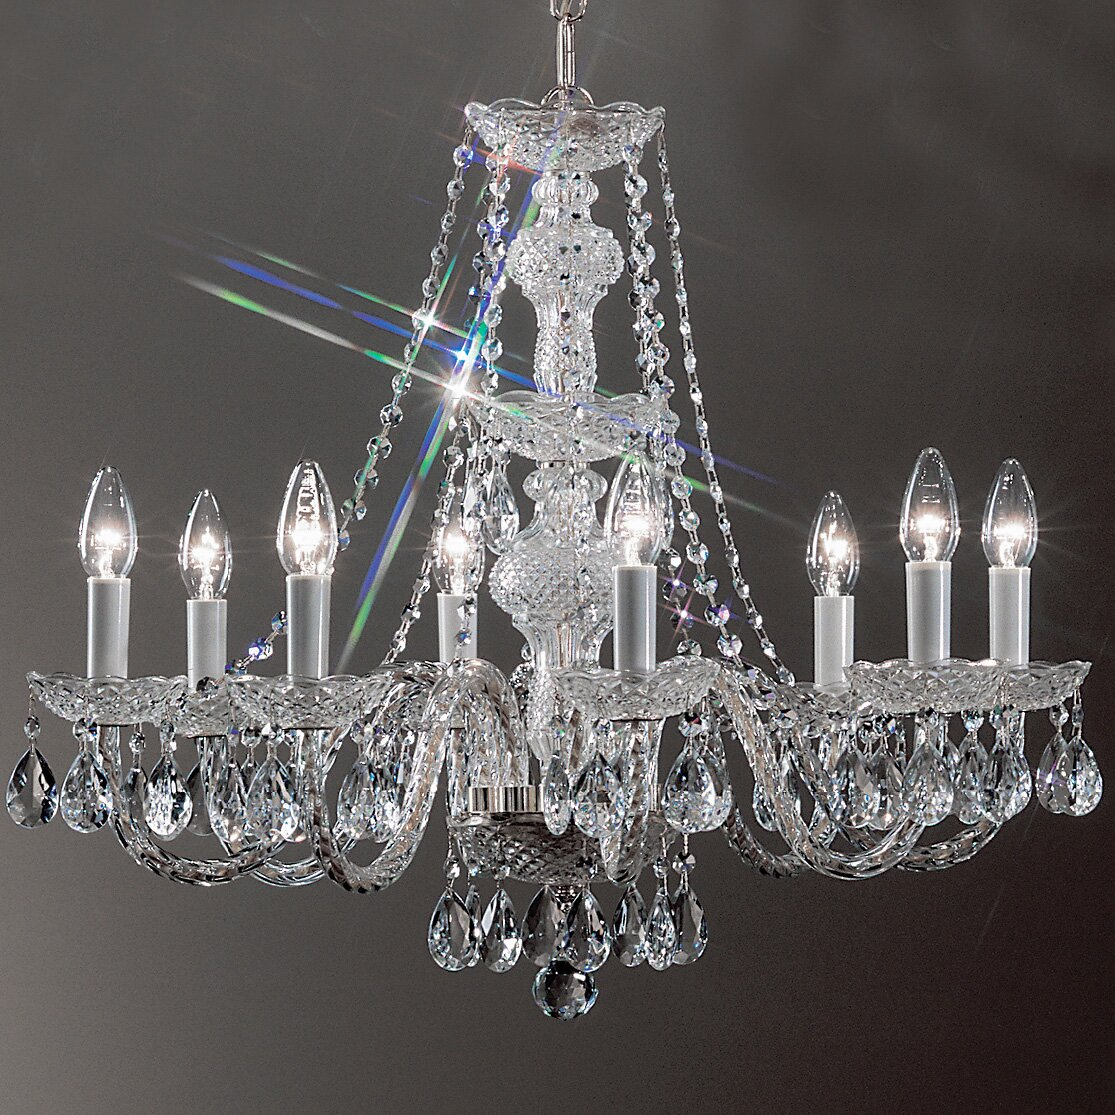 Classic Lighting Monticello 8 Light Crystal Chandelier